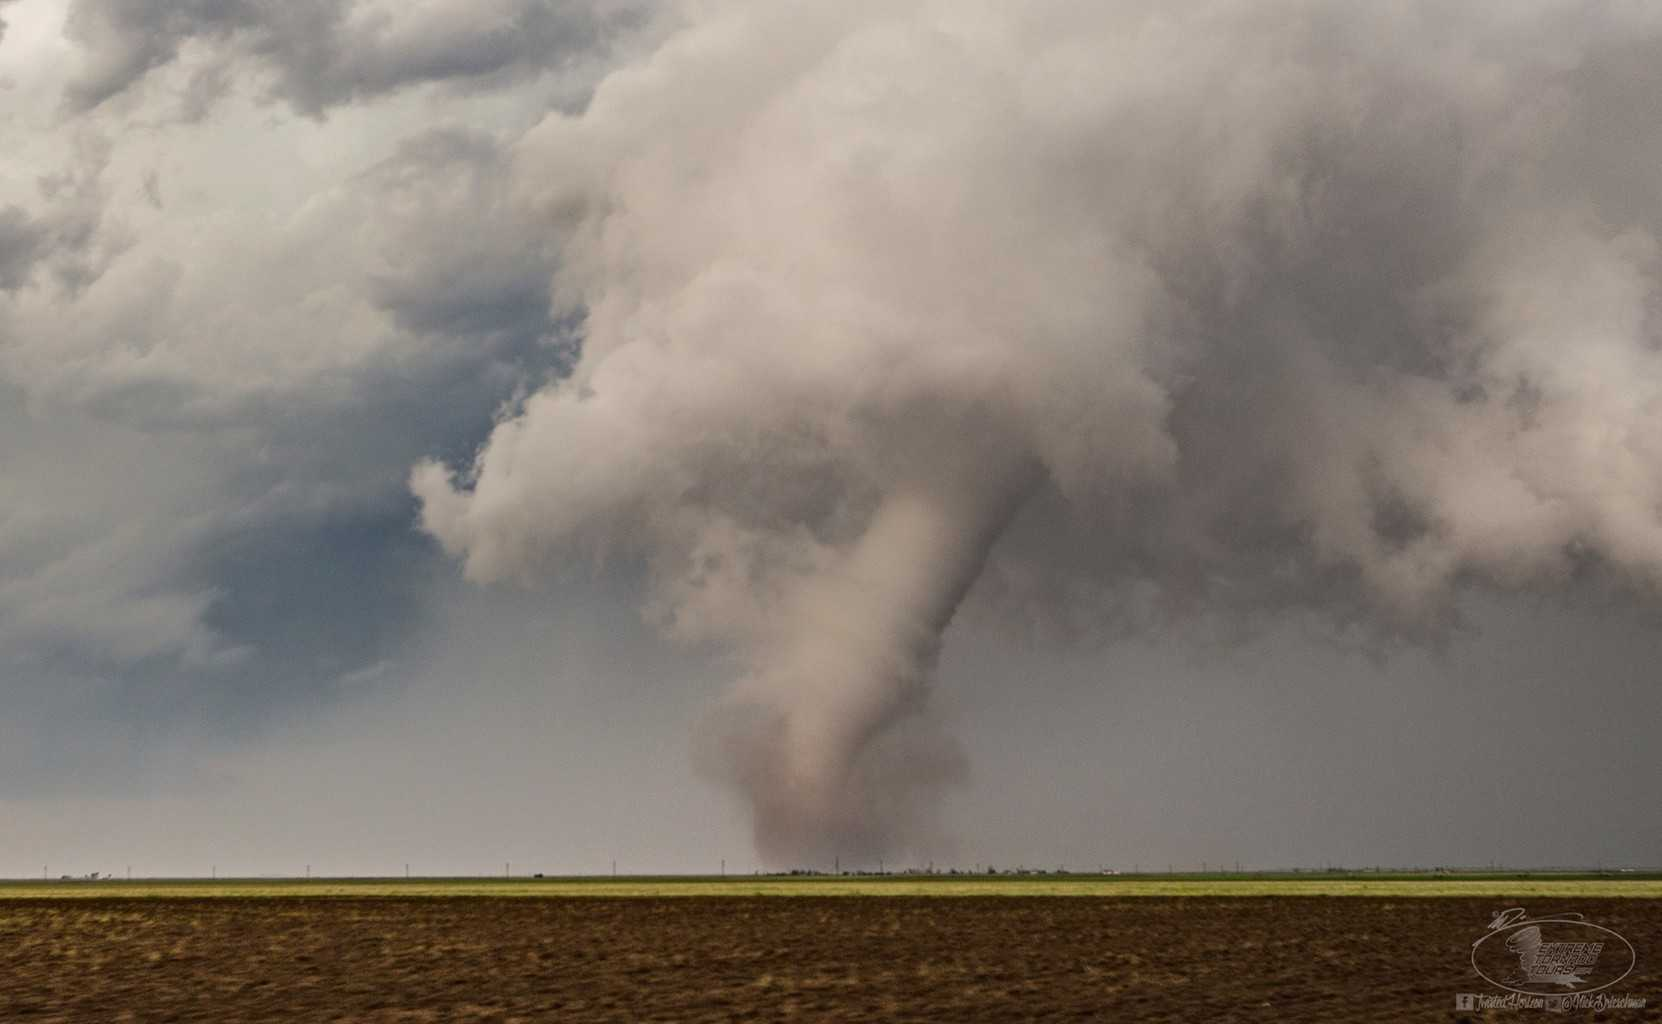 First of a handful of tornadoes chased yesterday in Northeast Colorado that moved into Wyoming and then into Nebraska from a single cyclic supercell that at times had three mesocyclones.